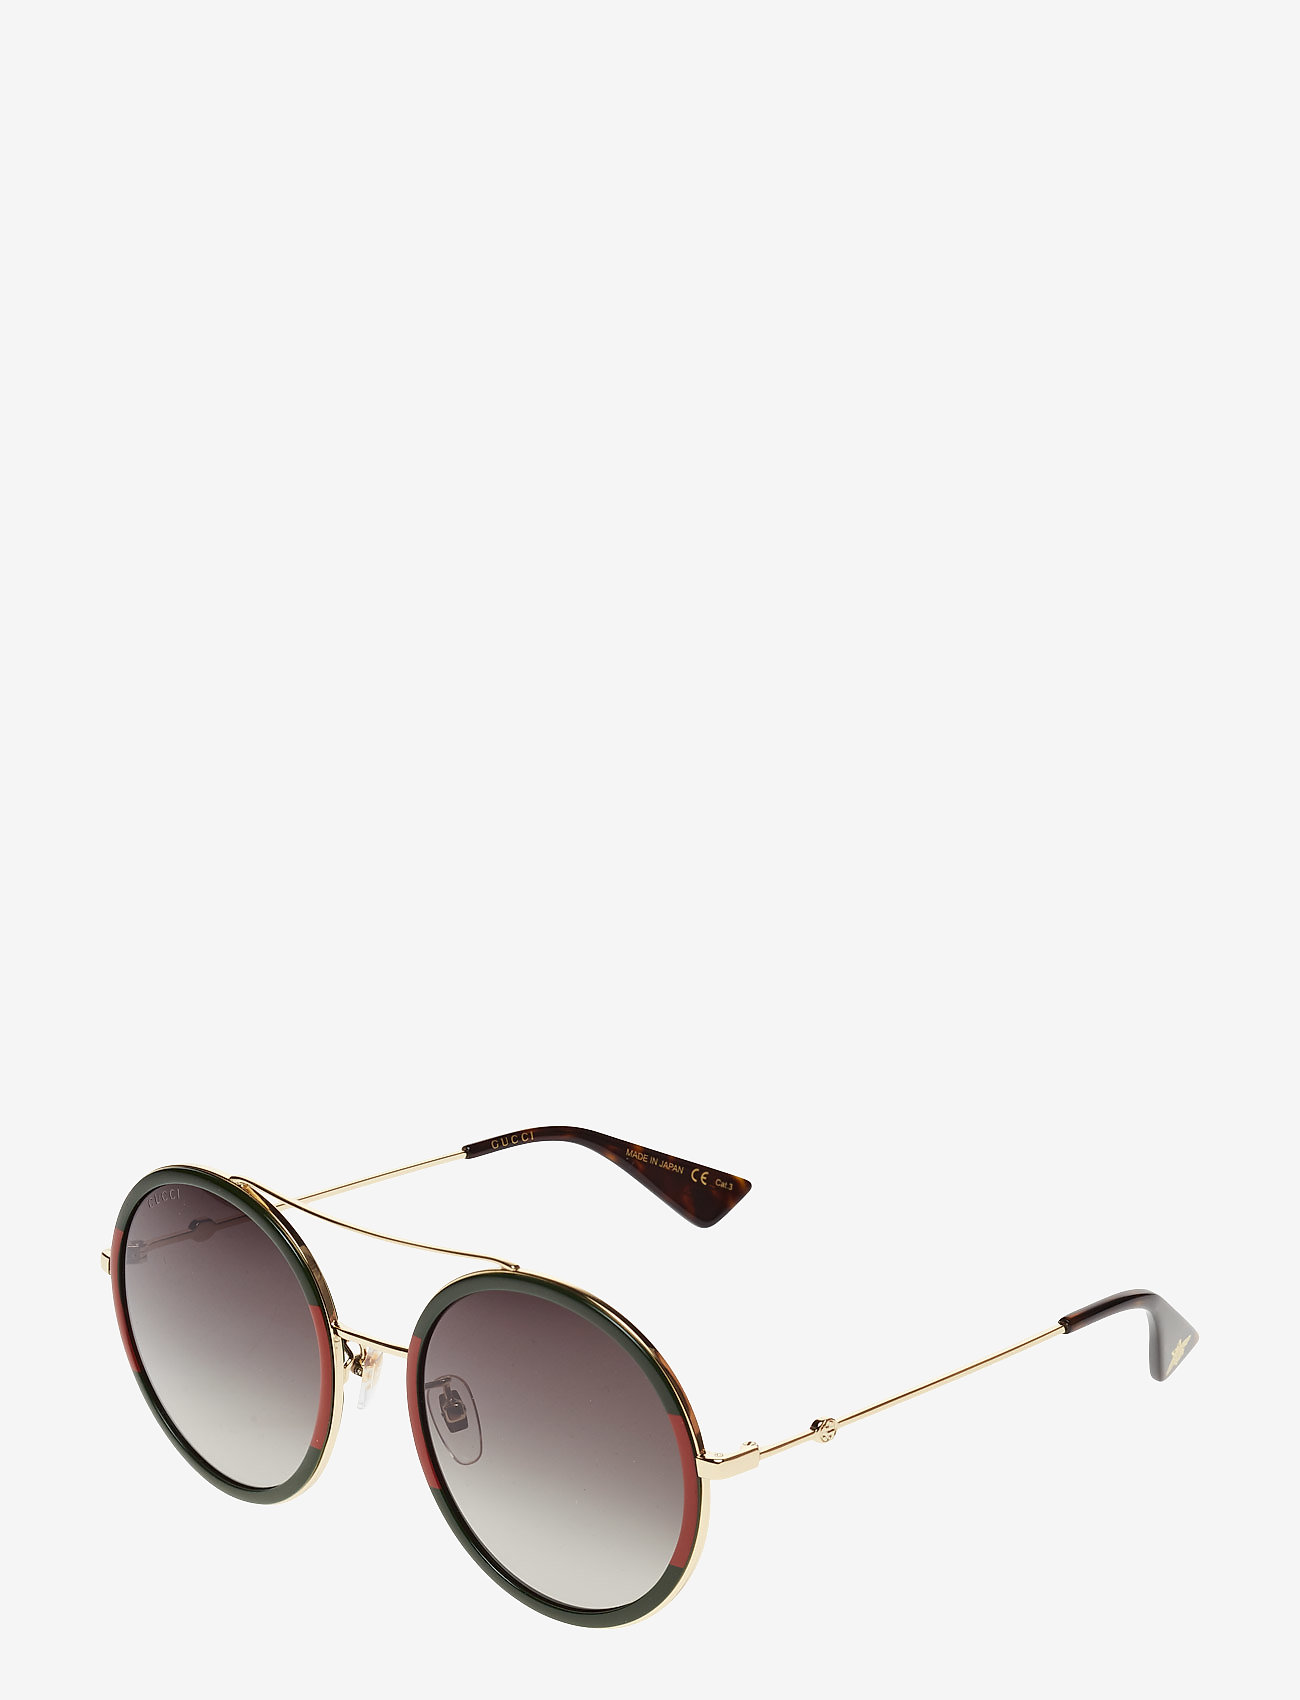 Gucci Sunglasses - GG0061S - round frame - gold-gold-green - 1